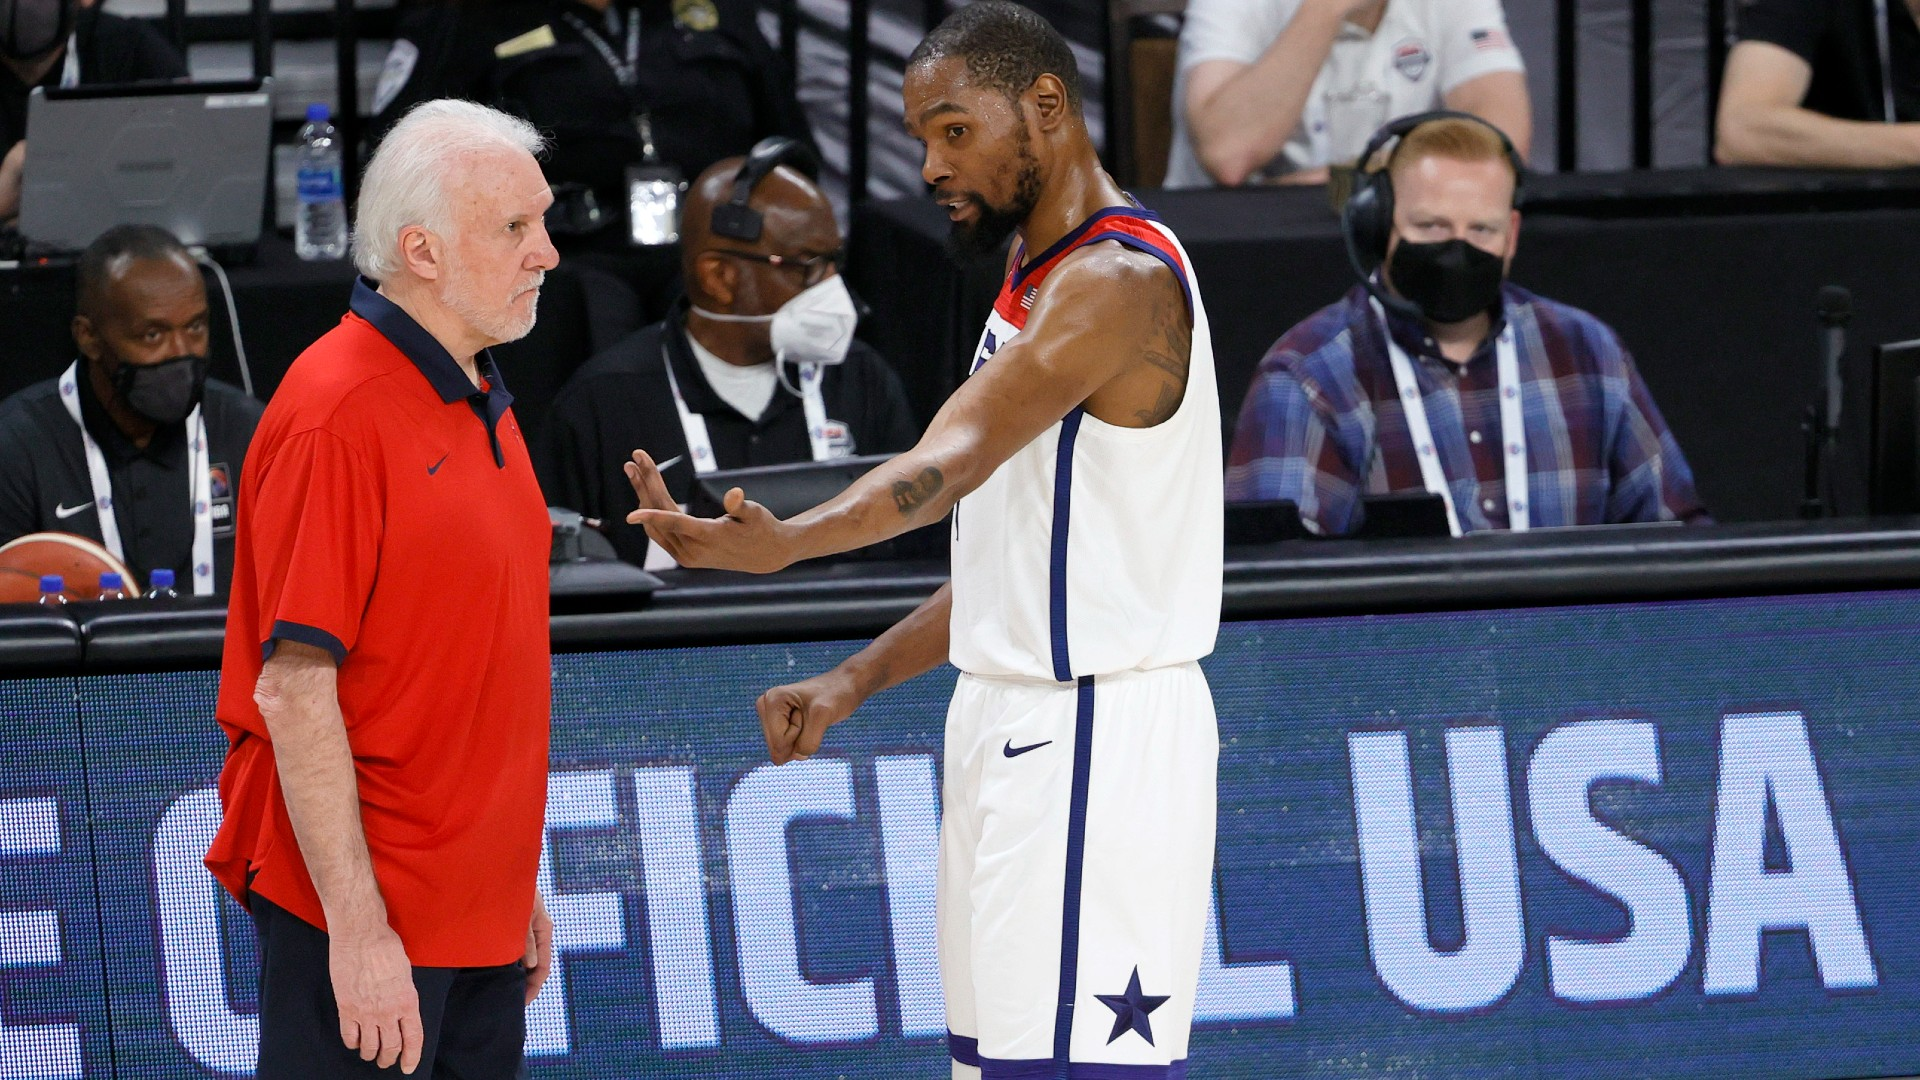 USA vs. Argentina live score, updates, highlights from 2021 Olympic men's basketball exhibition game thumbnail